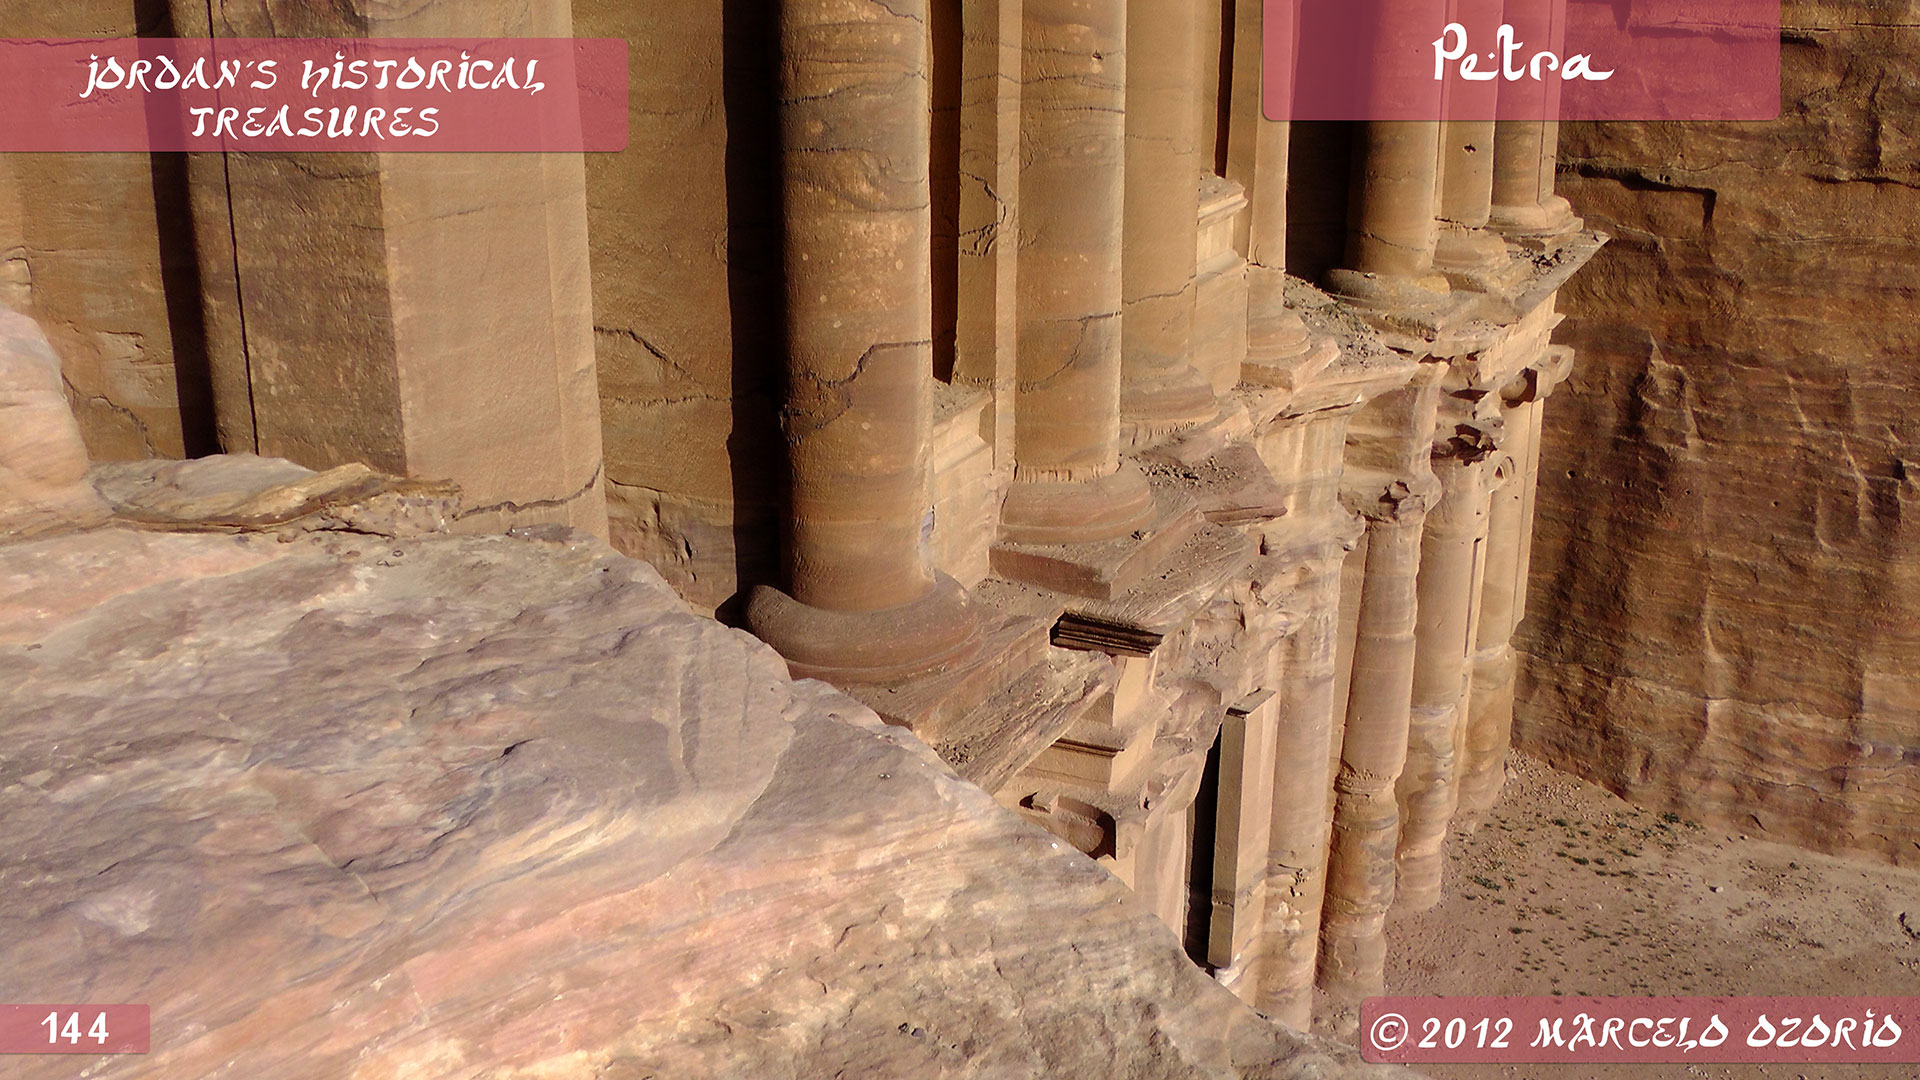 Petra Archaeological City Jordan 64 - The Astonishing Treasure at Petra - Jordan